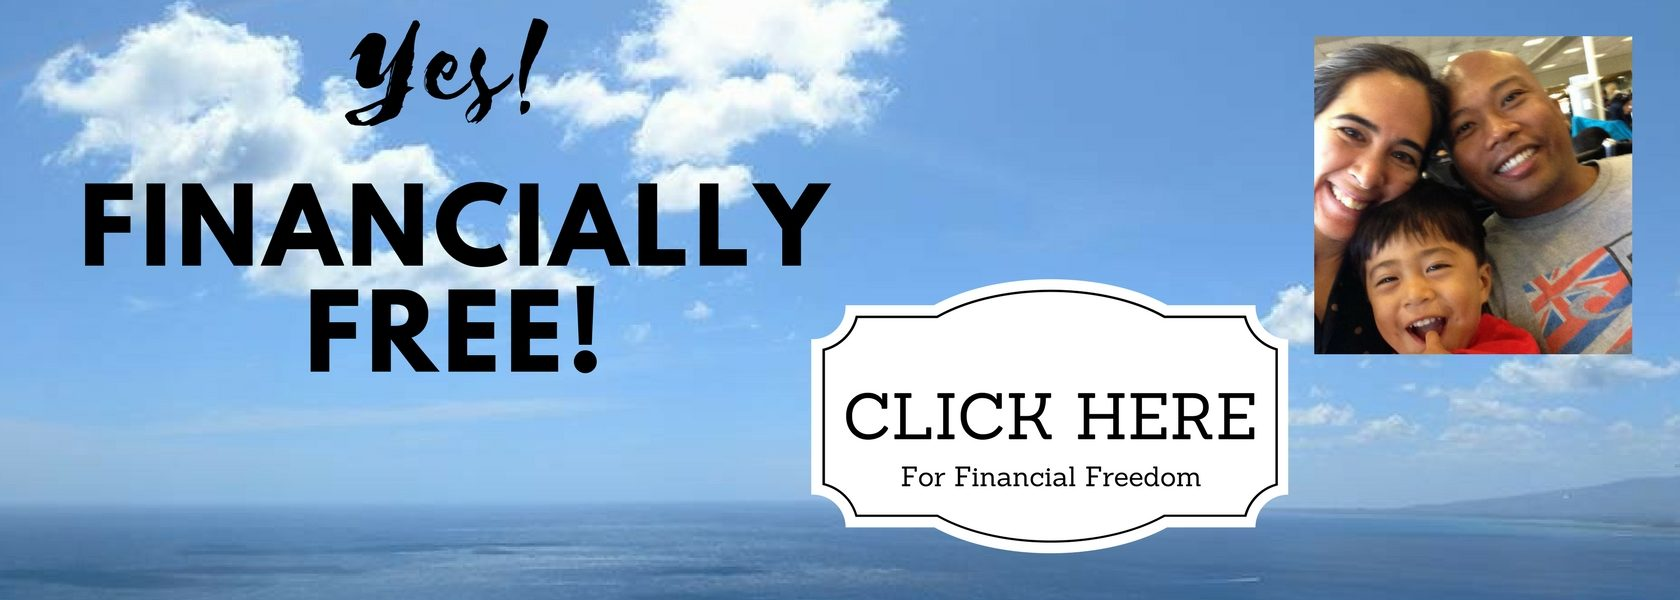 Yes Financially Free